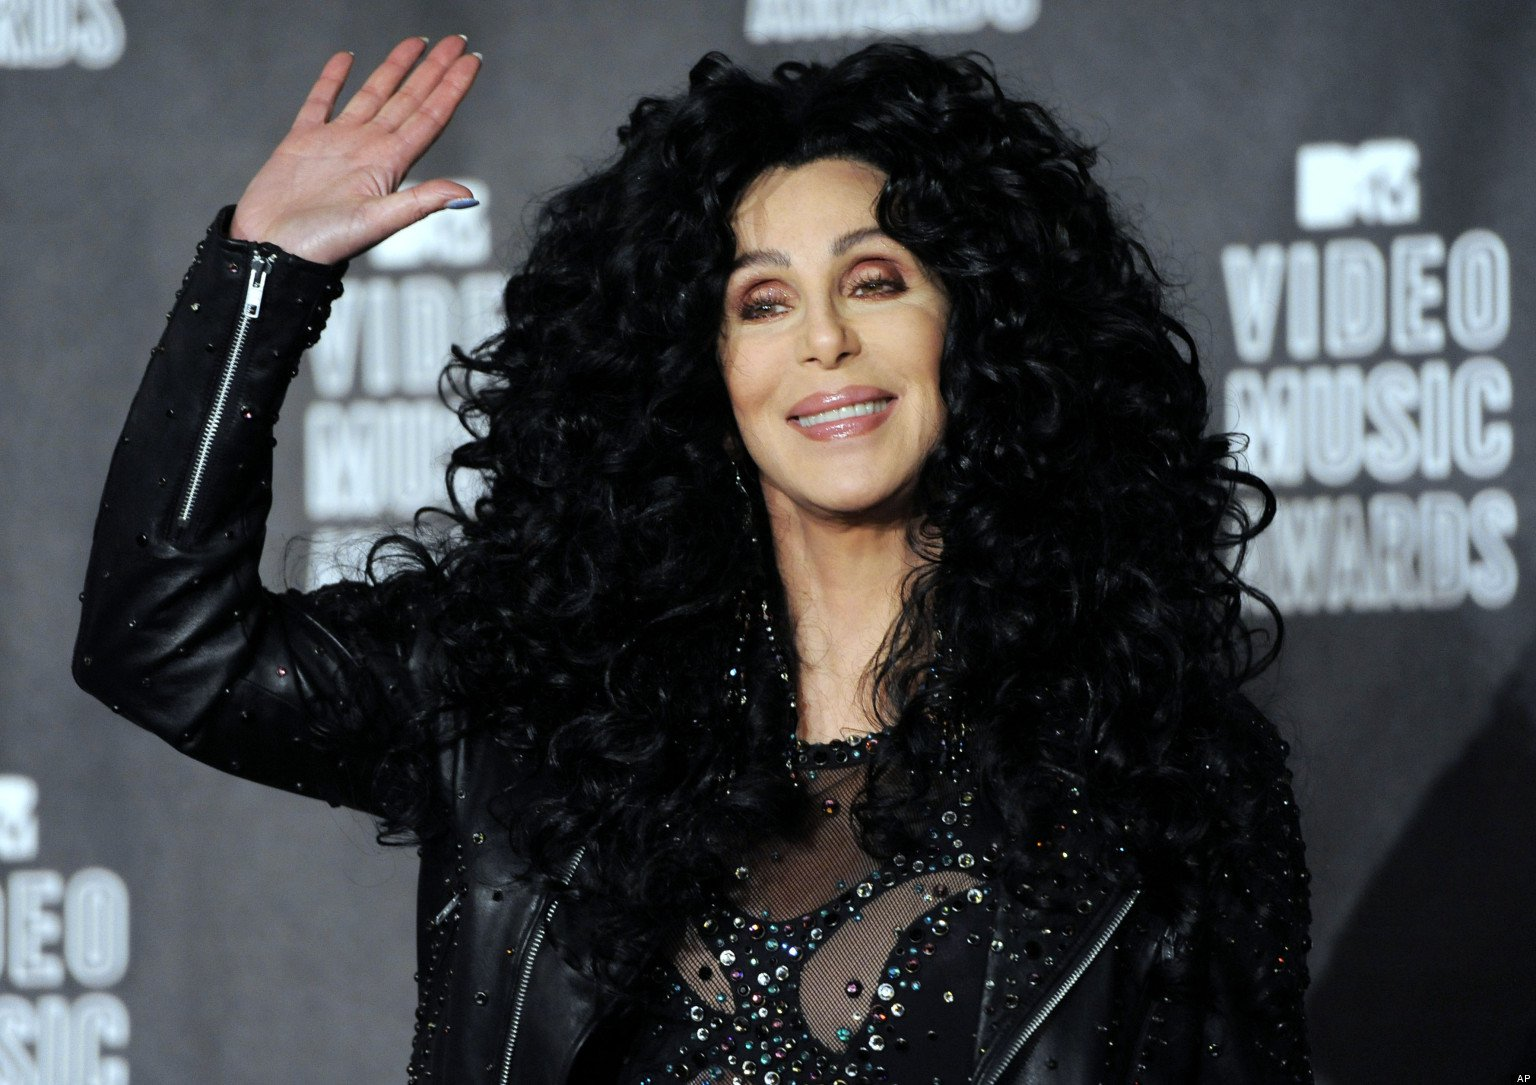 FILE - In this Sept. 12, 2010 file photo, Cher poses in the press room at the MTV Video Music Awards in Los Angeles. (AP Photo/Chris Pizzello, file)